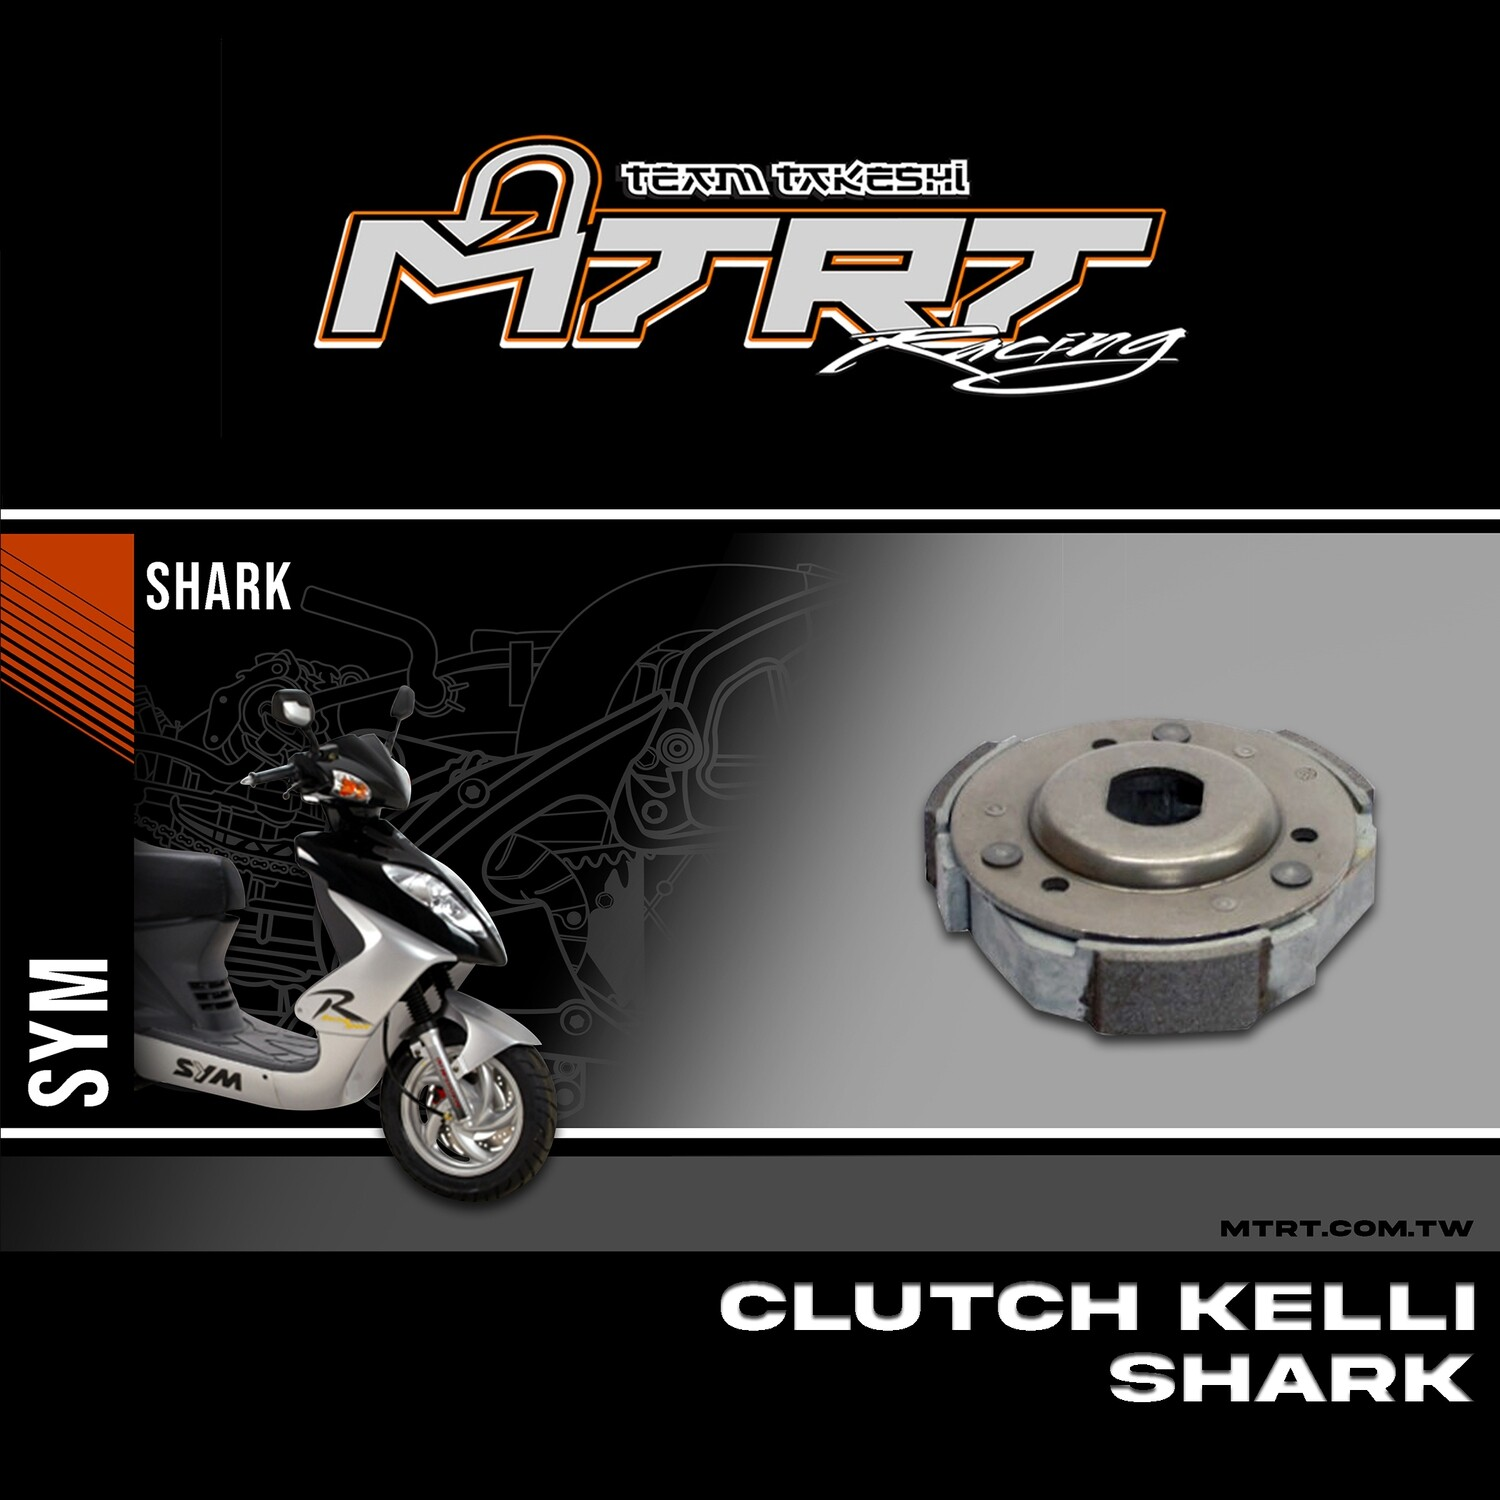 CLUTCH  KELLI GY6125 SHARK SUPER8 MOVIE Main. Bd6